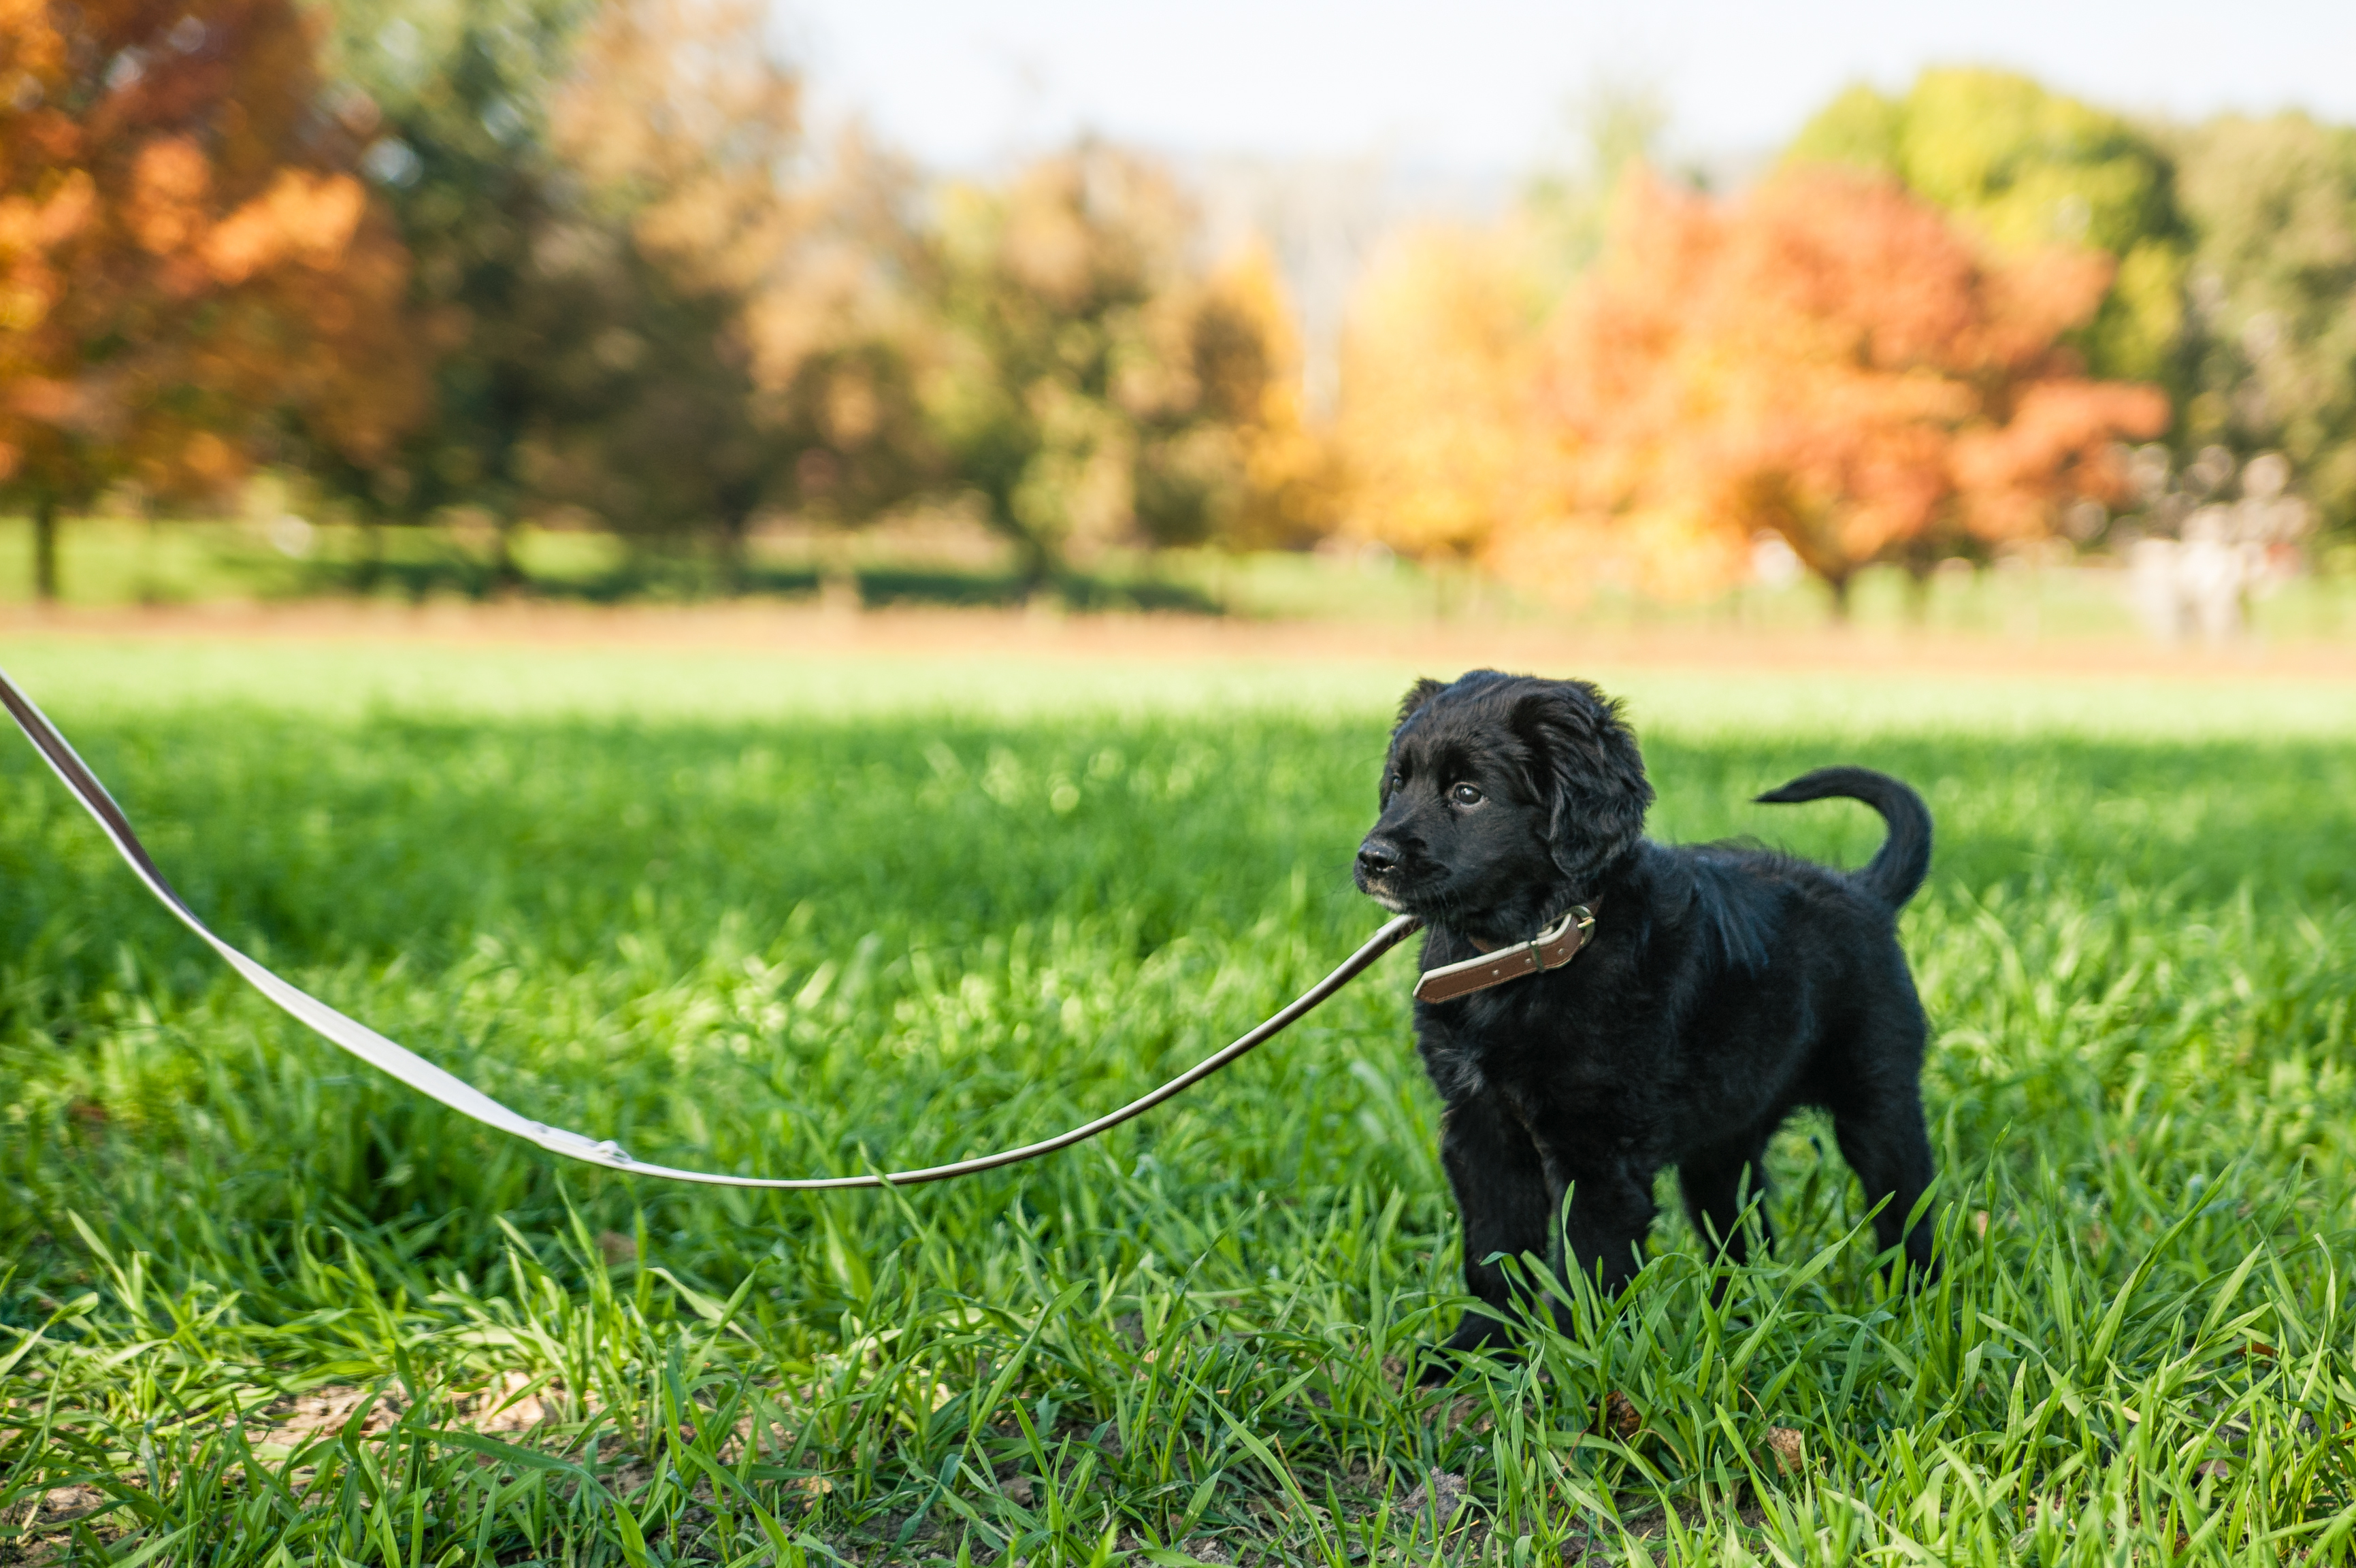 Small black dog on a lead